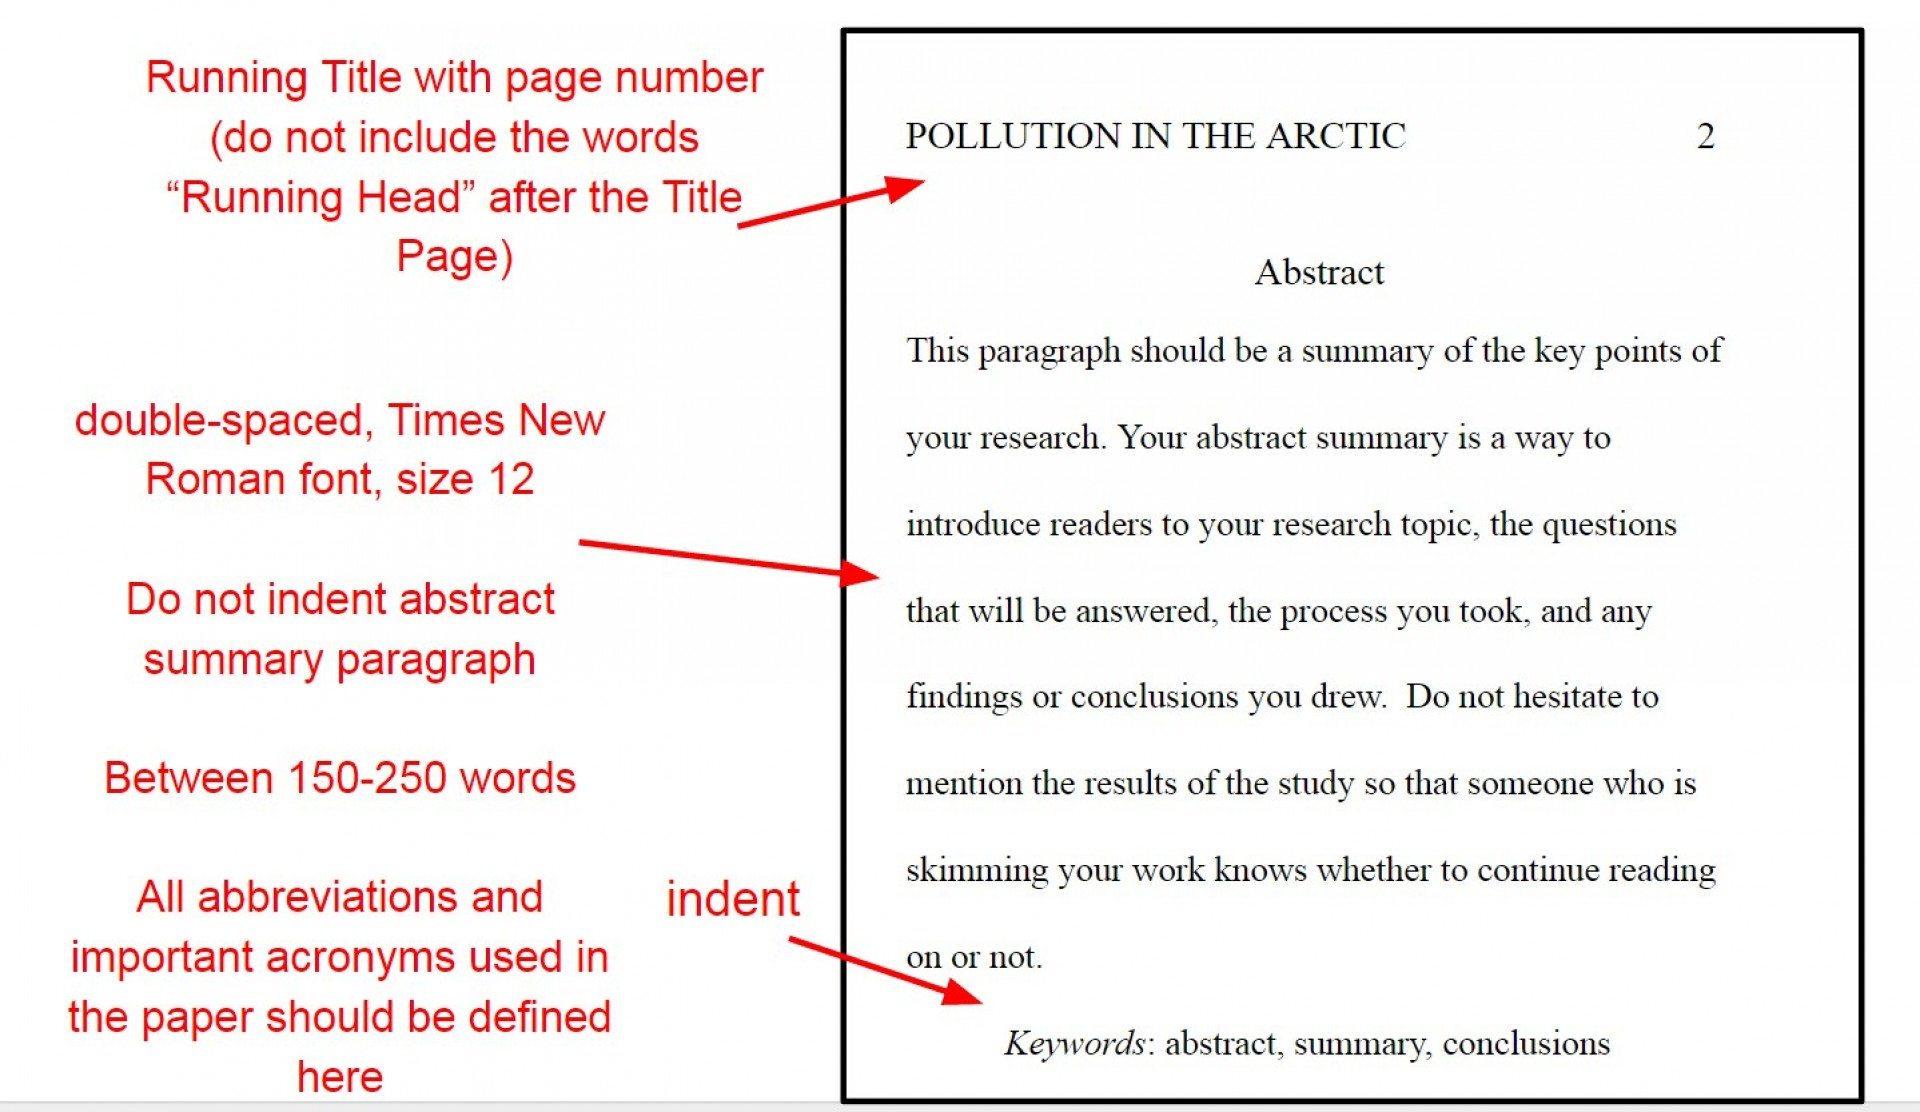 006 Apaabstractyo Research Paper Example Of In Apa Outstanding Format How To Write A College 6th Edition Examples Outline Style 1920